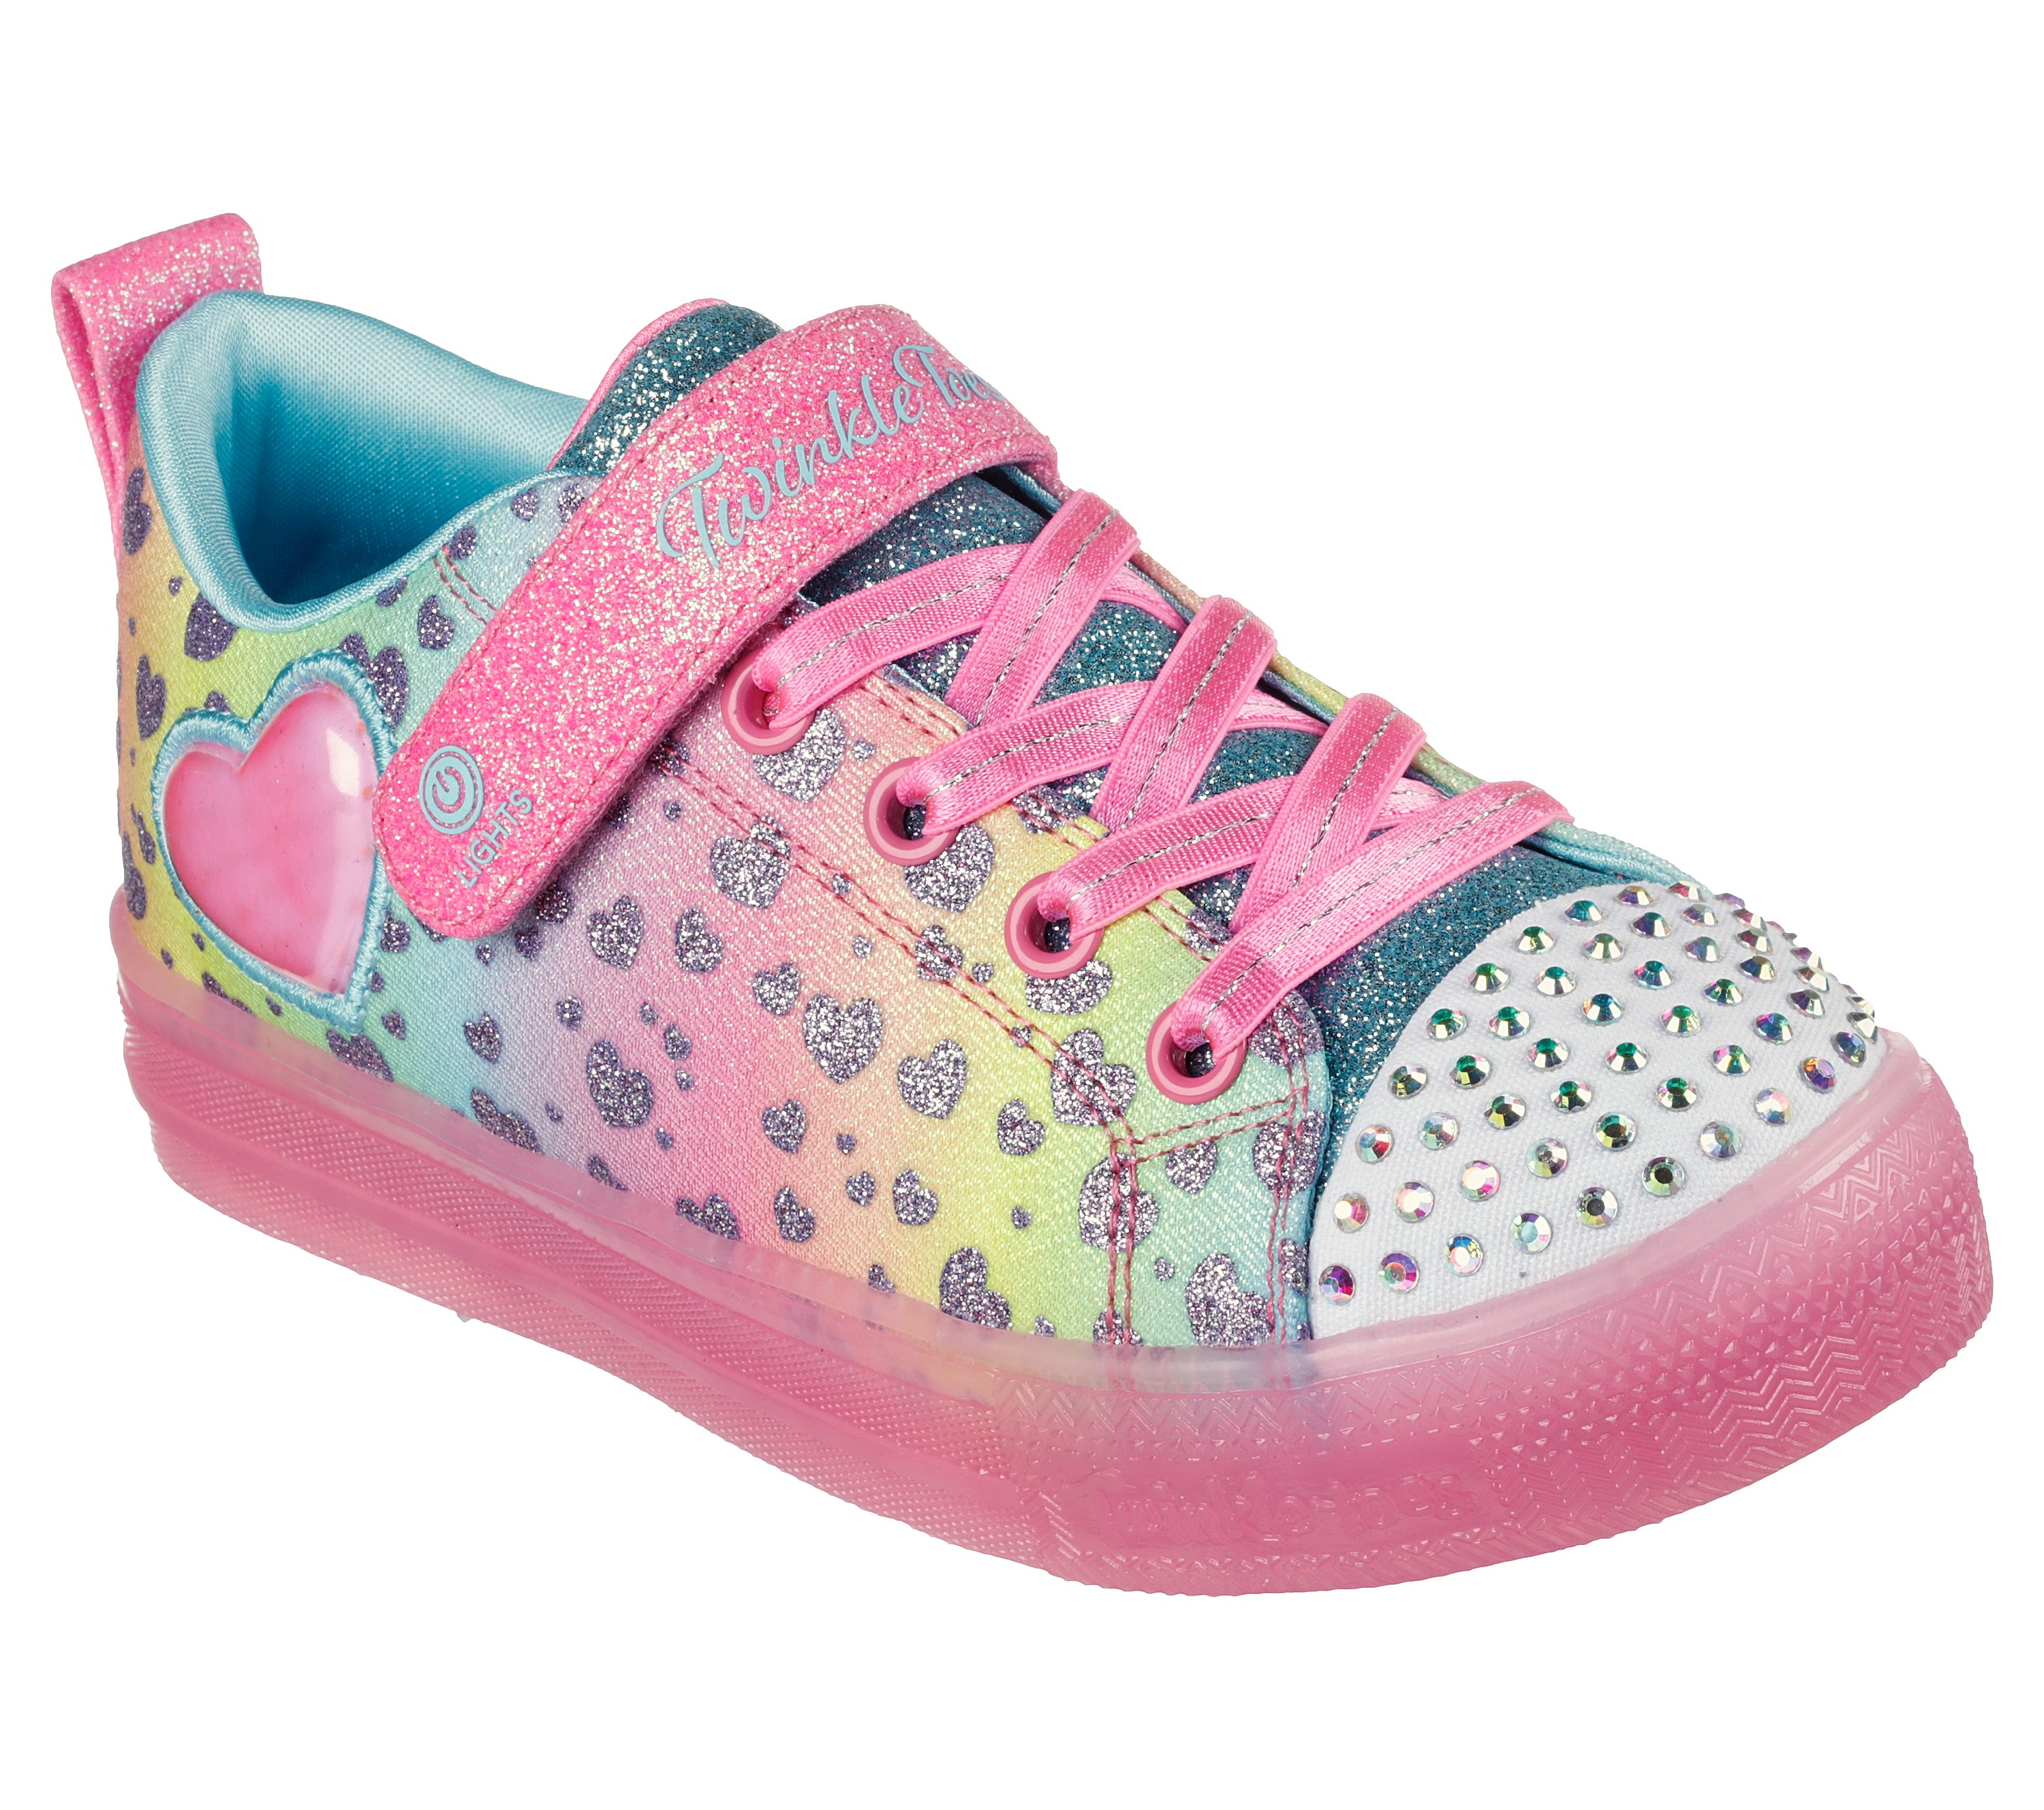 Shop the Twinkle Toes: Shuffle Brights